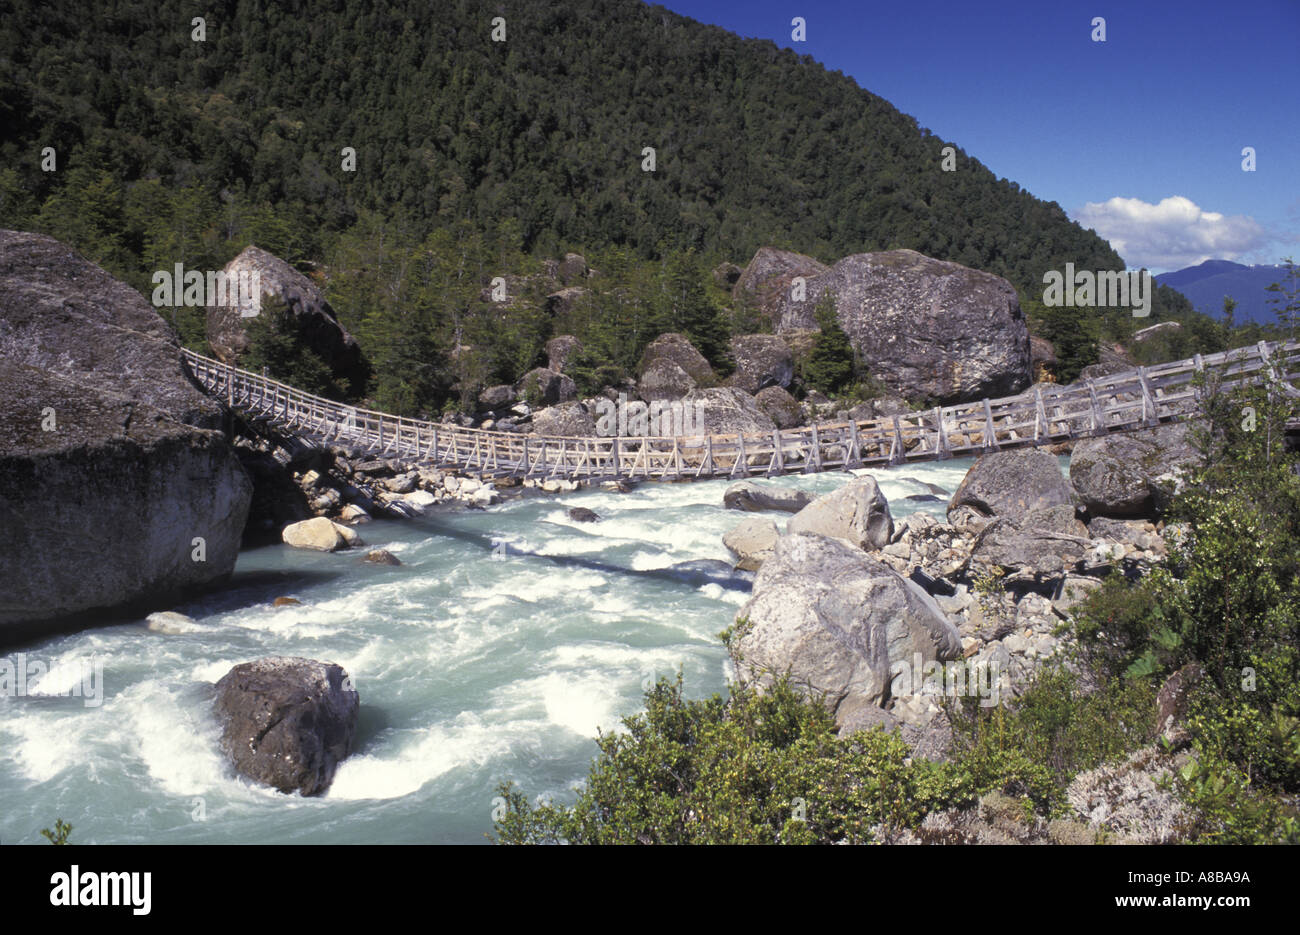 Chile Patagonia Queulat National Park - Stock Image